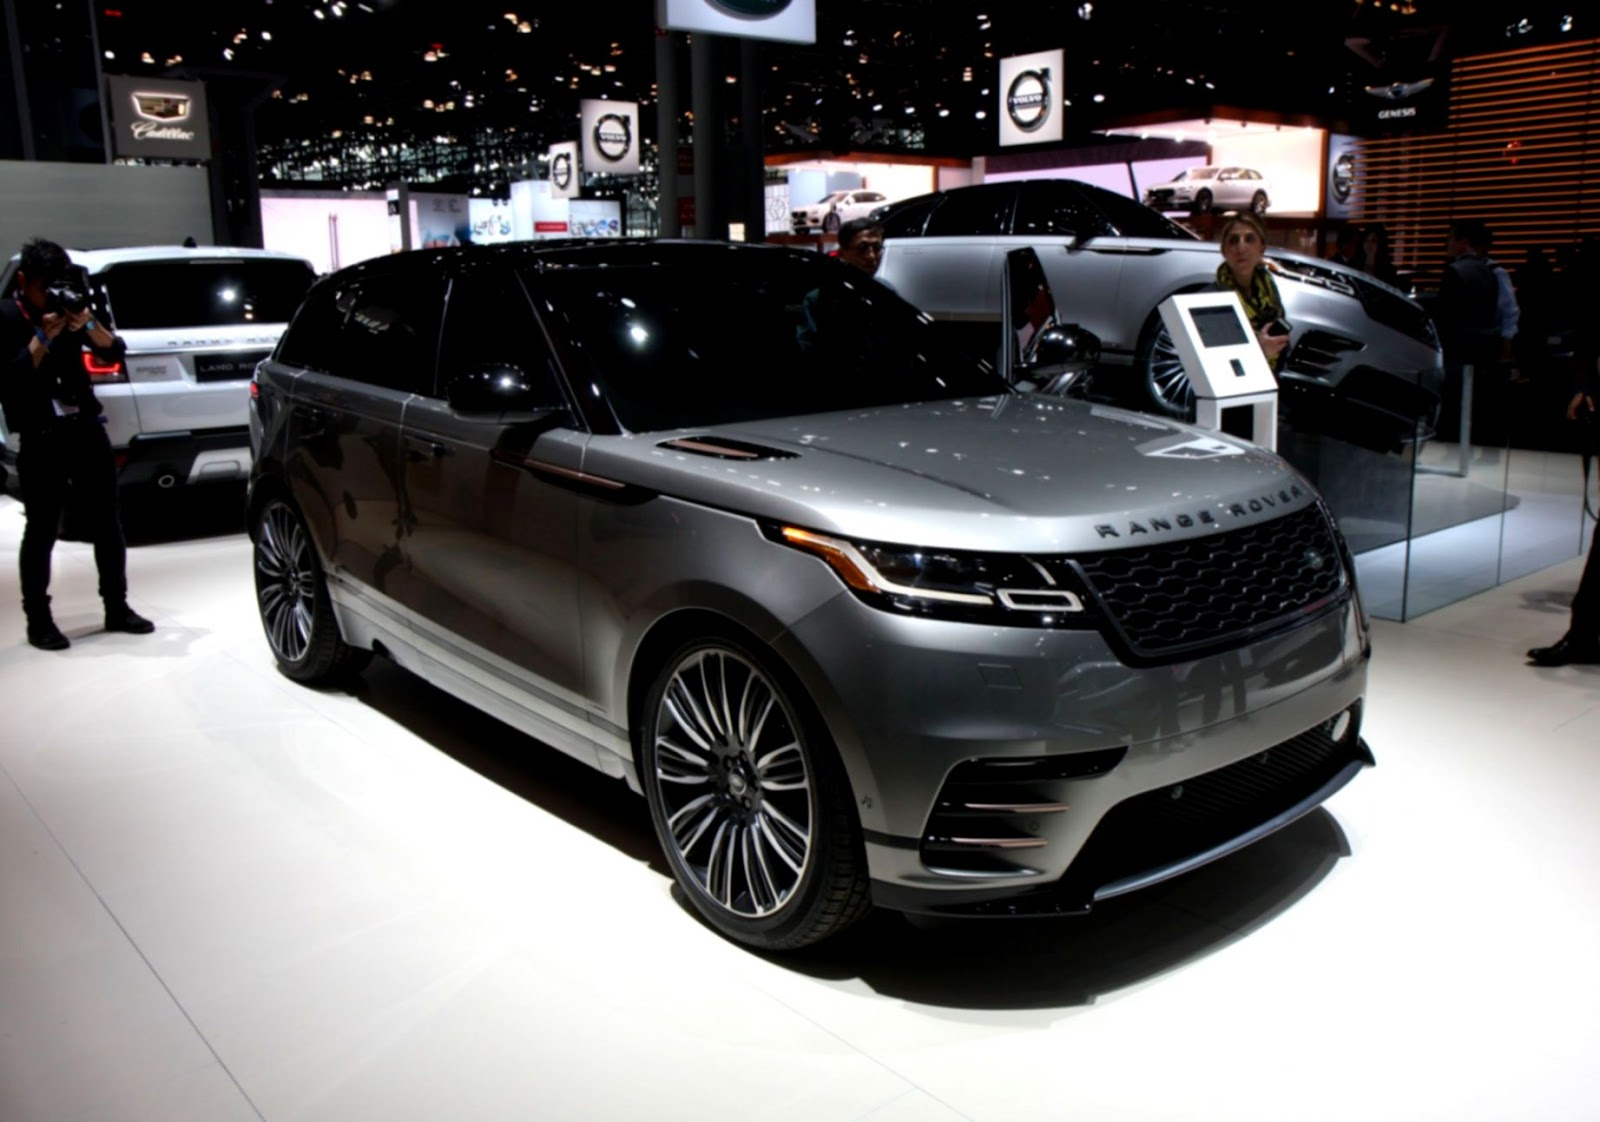 Land Rover Fort Worth >> Range Rover Dealer Free Hd Wallpapers